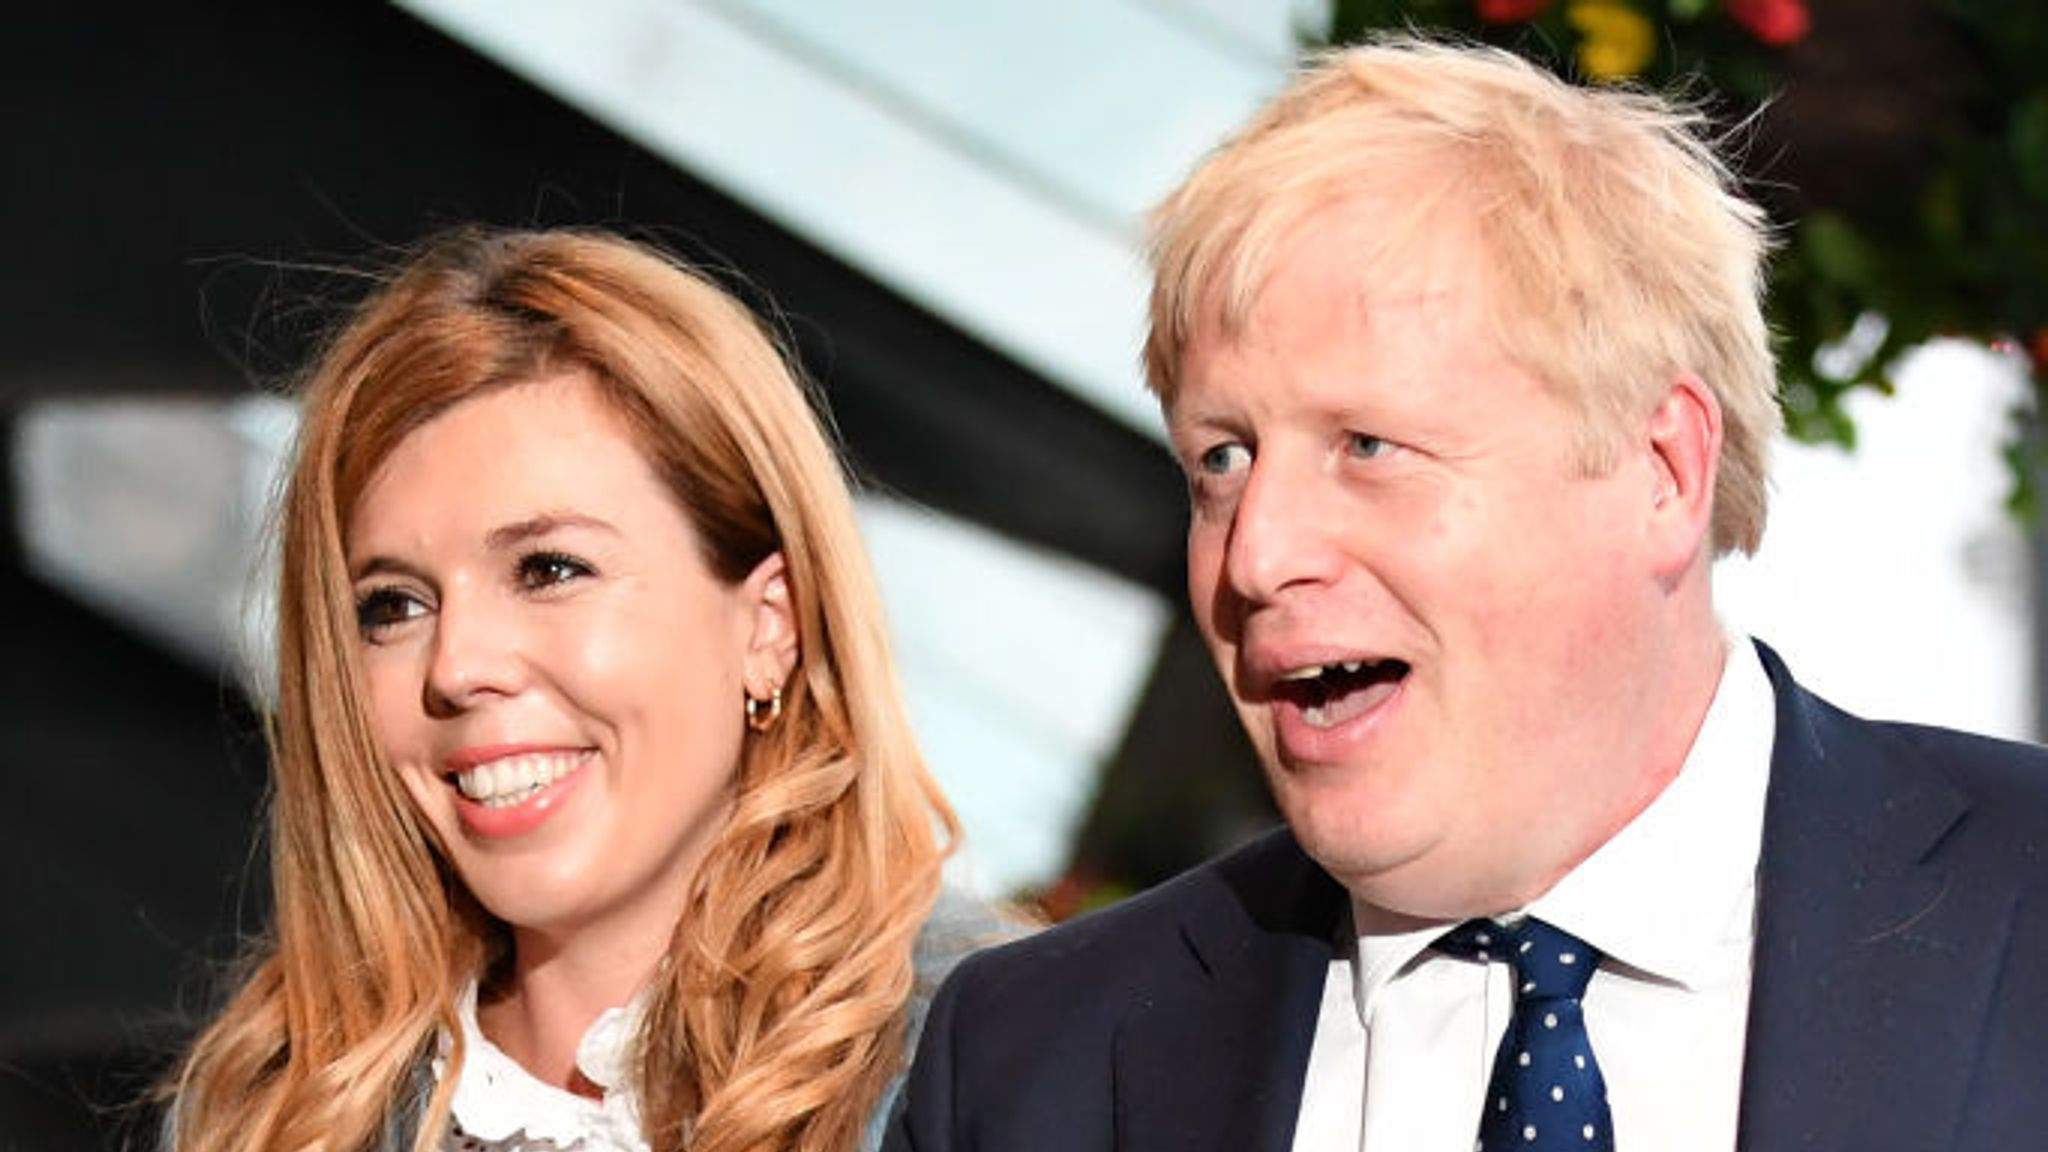 Boris Johnson and girlfriend Carrie Symonds expecting first baby together - and reveal engagement | Politics News | Sky News